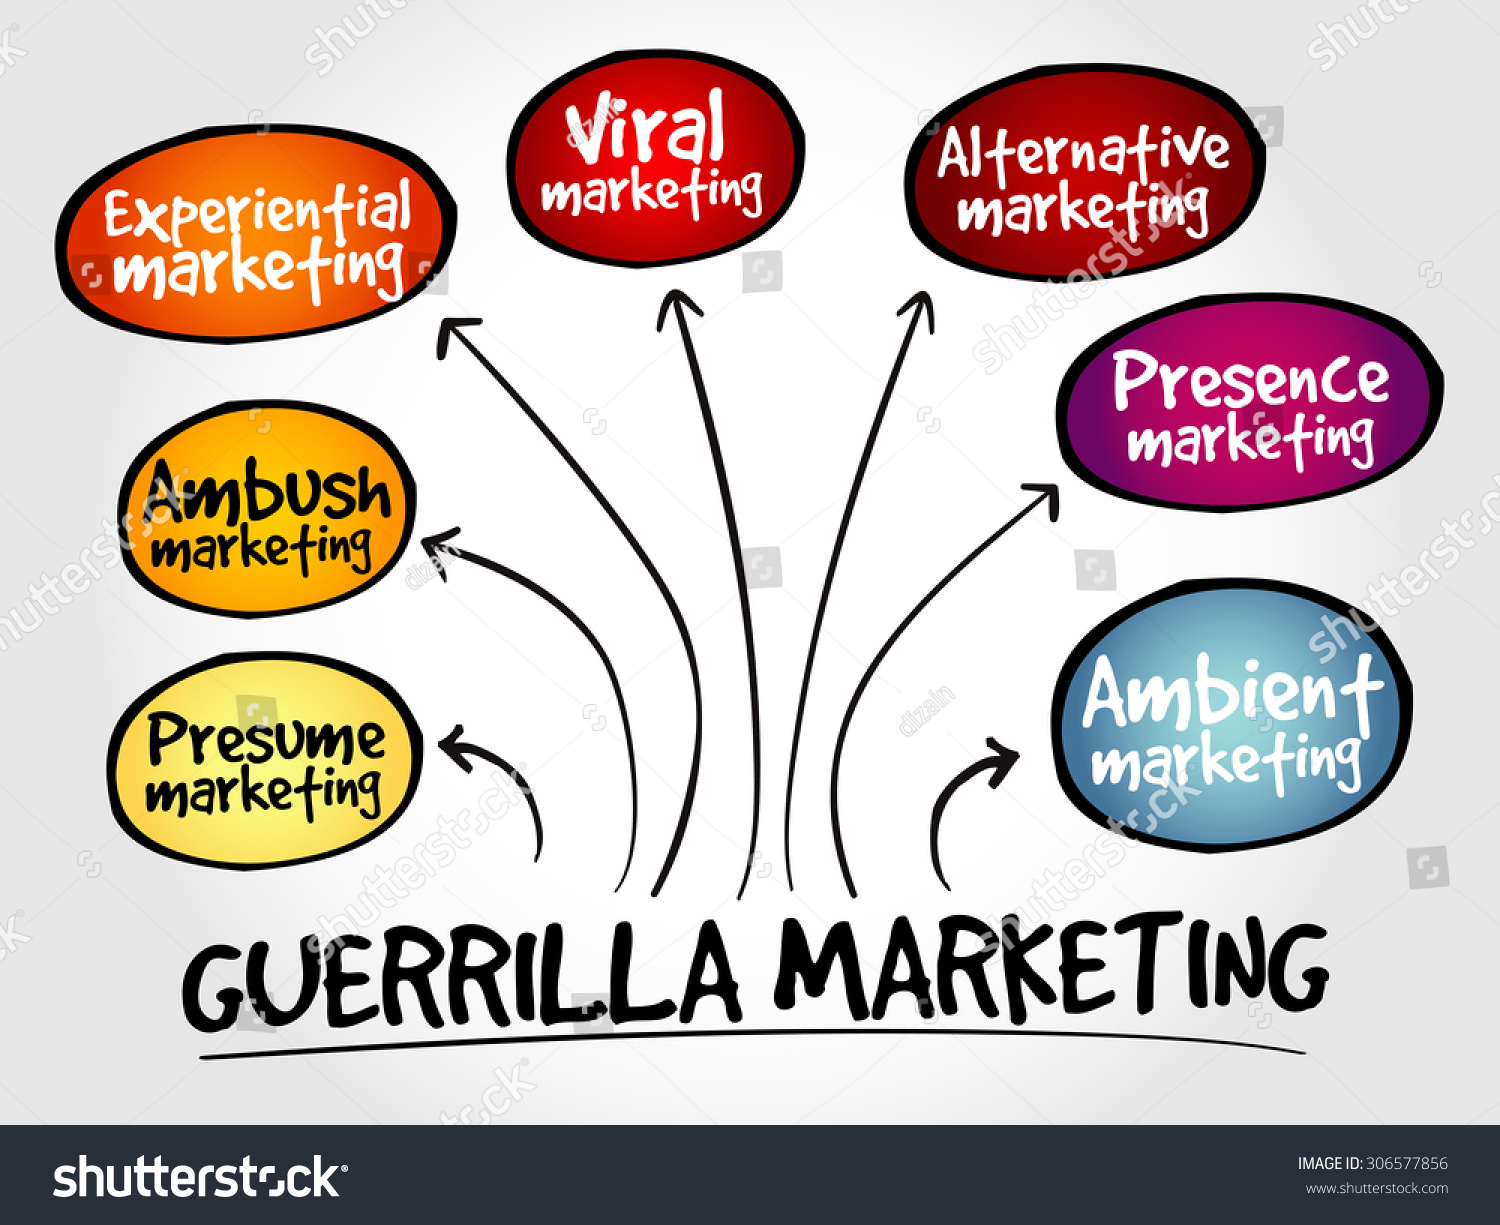 The Guerrilla Marketing Plan – 7 Sentences To Marketing Clarity